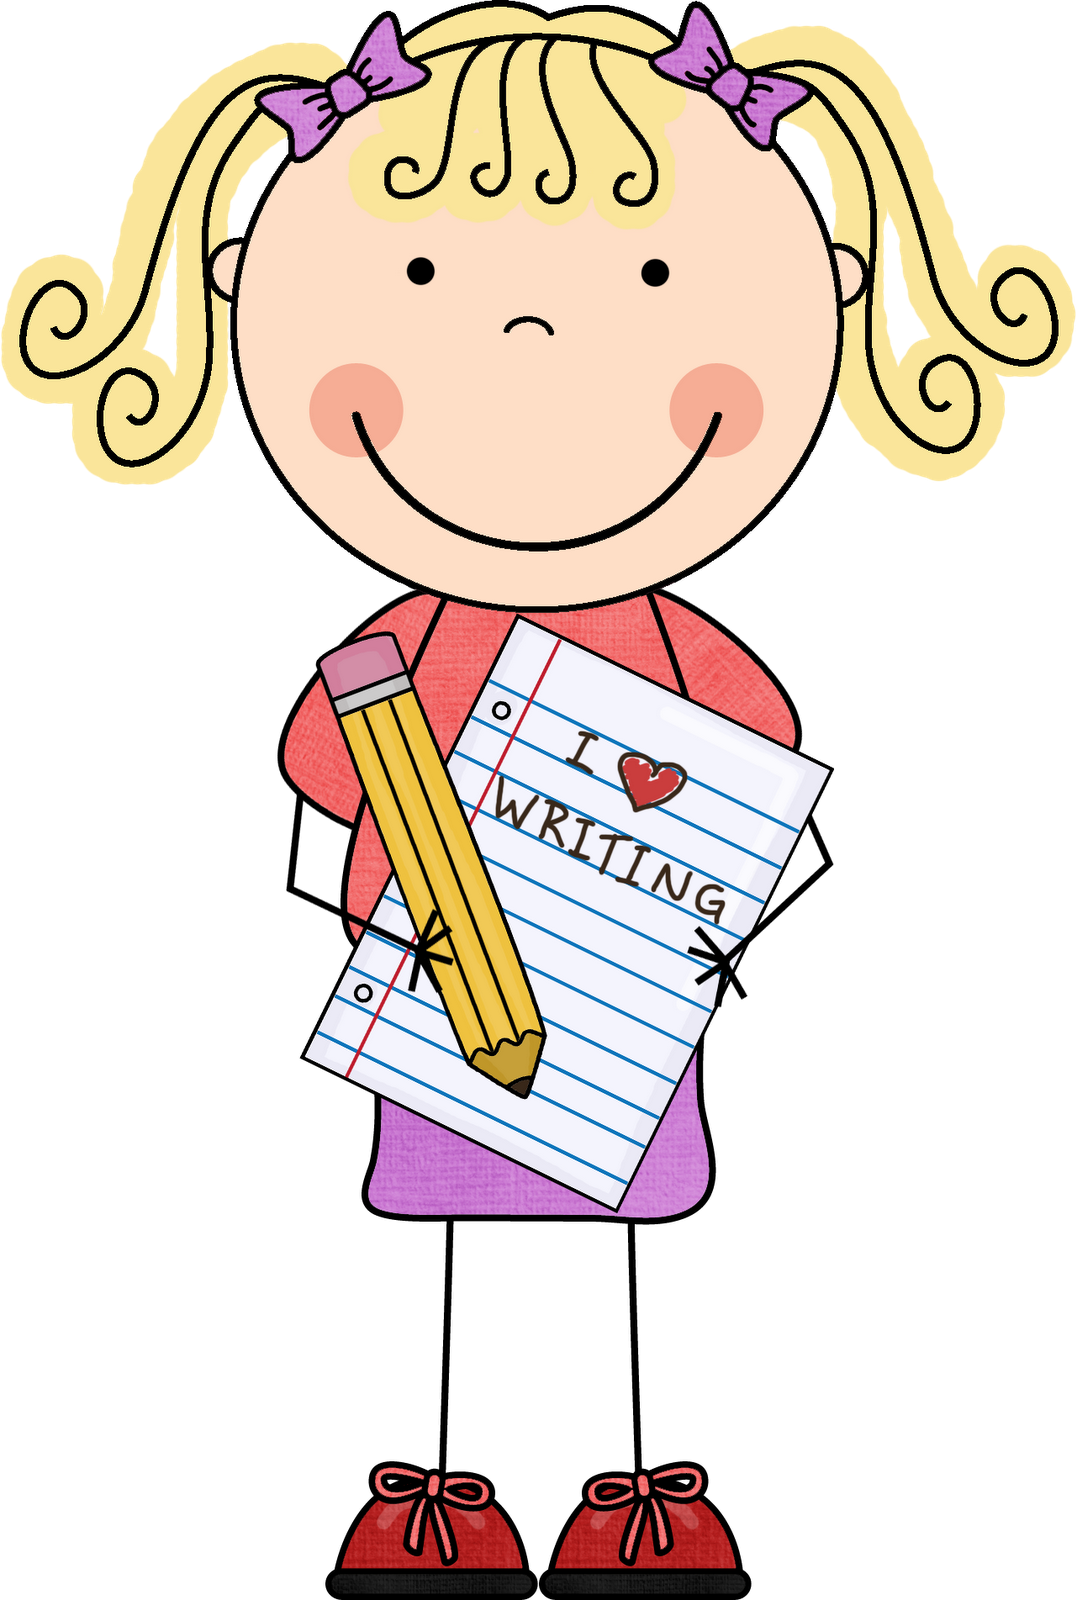 Year Old Clipart - Clipart Kid